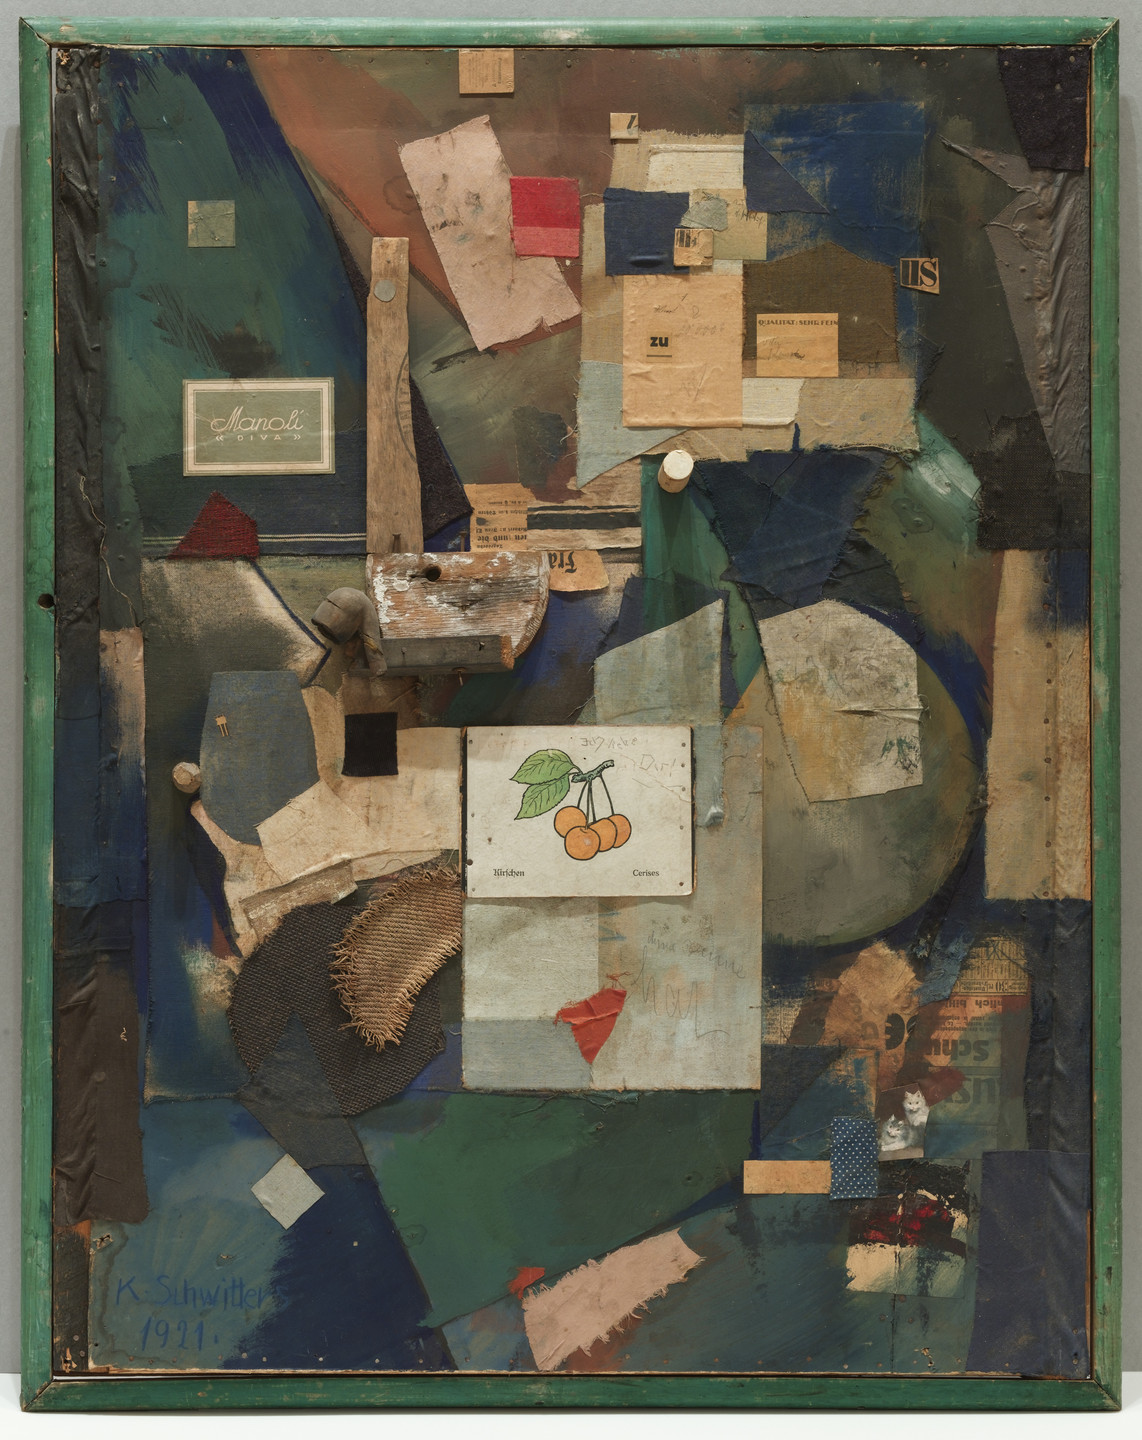 Kurt Schwitters. Merz Picture 32 A. The Cherry Picture (Merzbild 32 A. Das Kirschbild). 1921